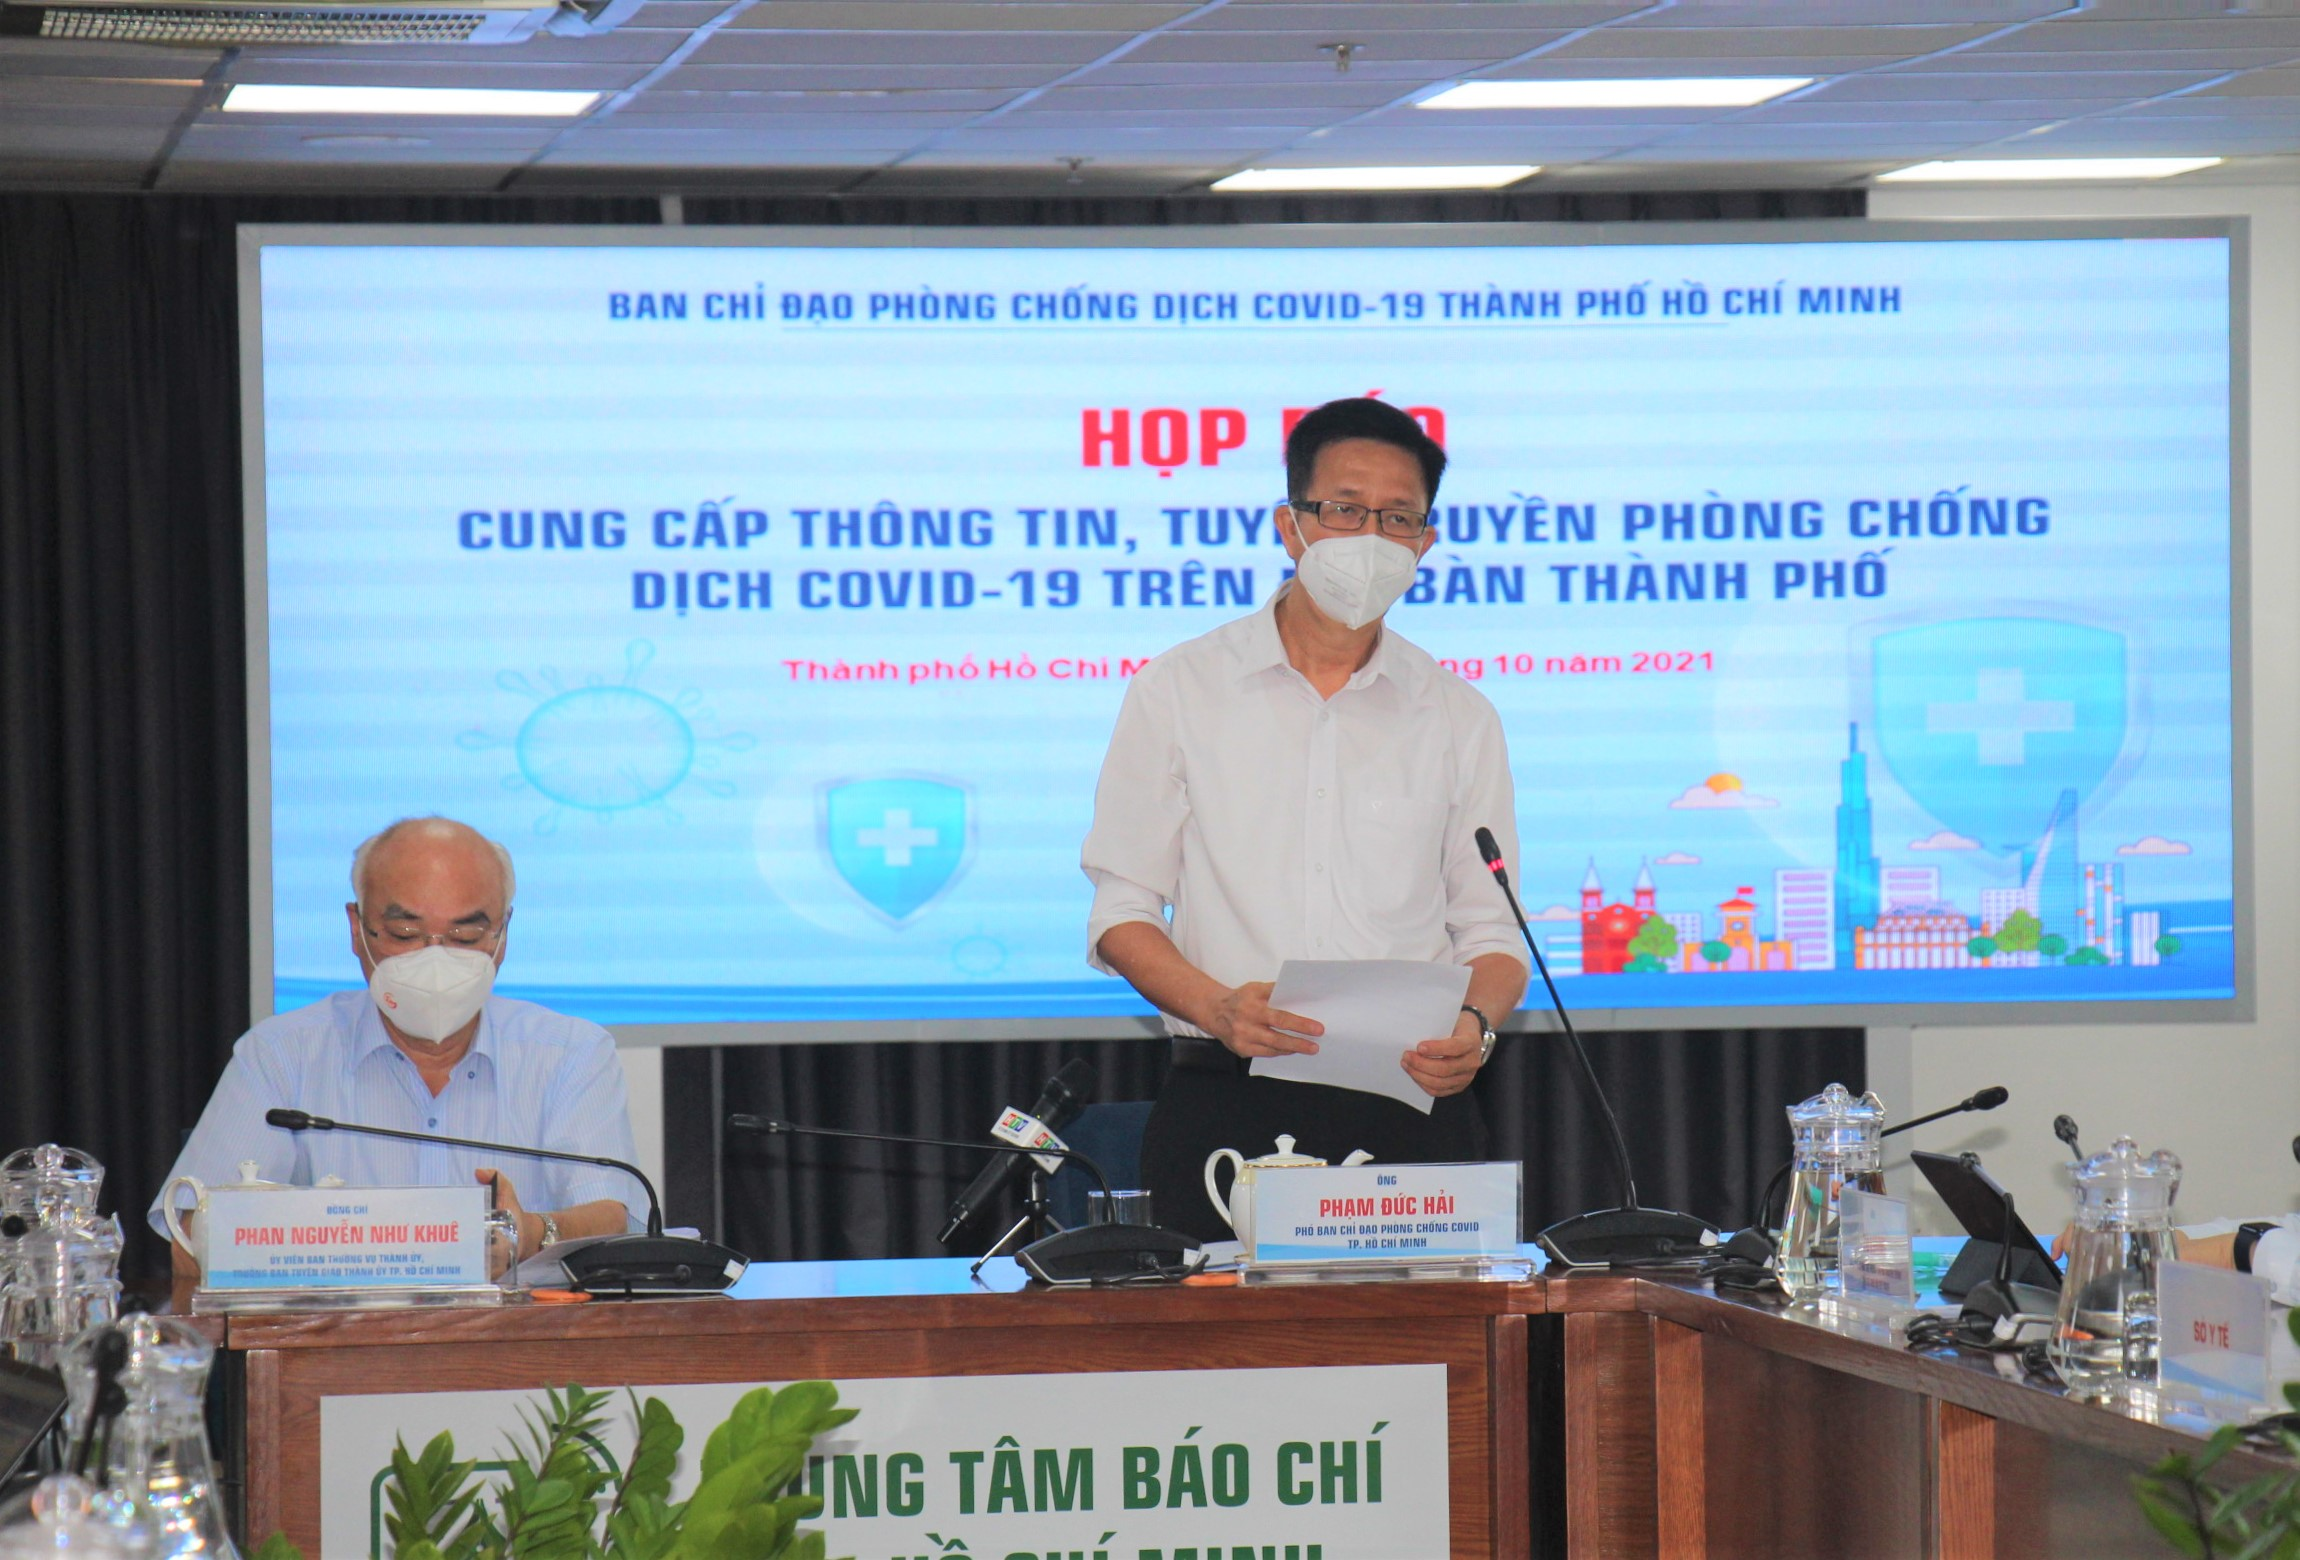 Over 9,000 businesses back on stream as Ho Chi Minh City eases social distancing